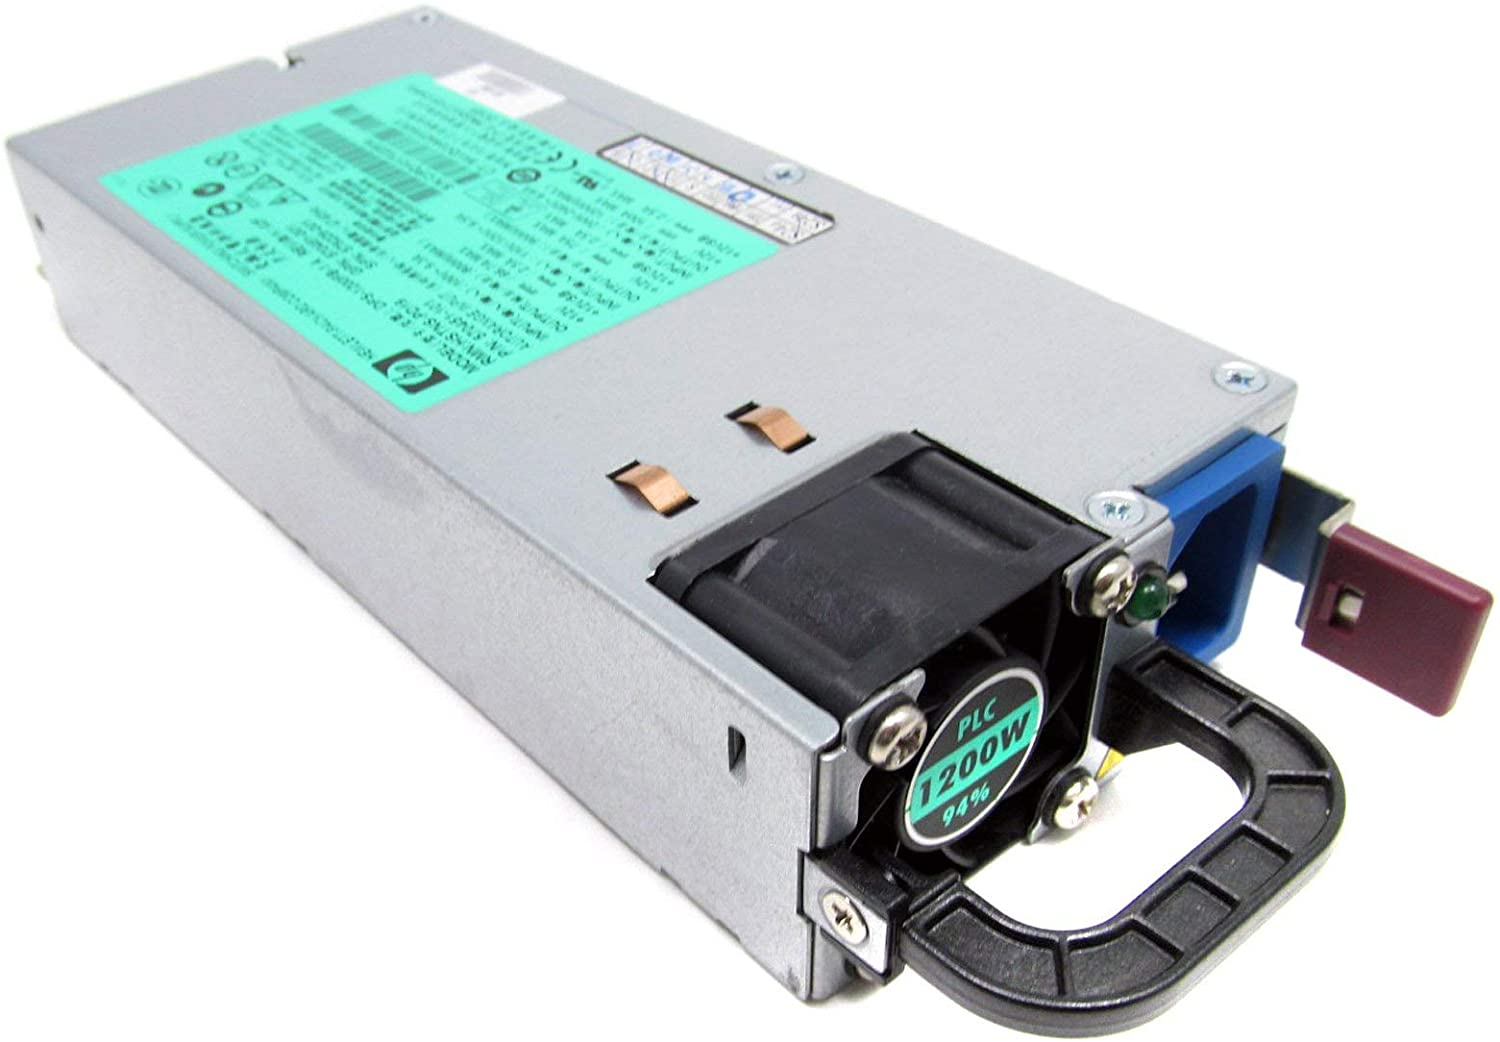 570451-101 - HP 1200W HE PLATINUM Hot Plug PSU for Proliant Servers. (Renewed)